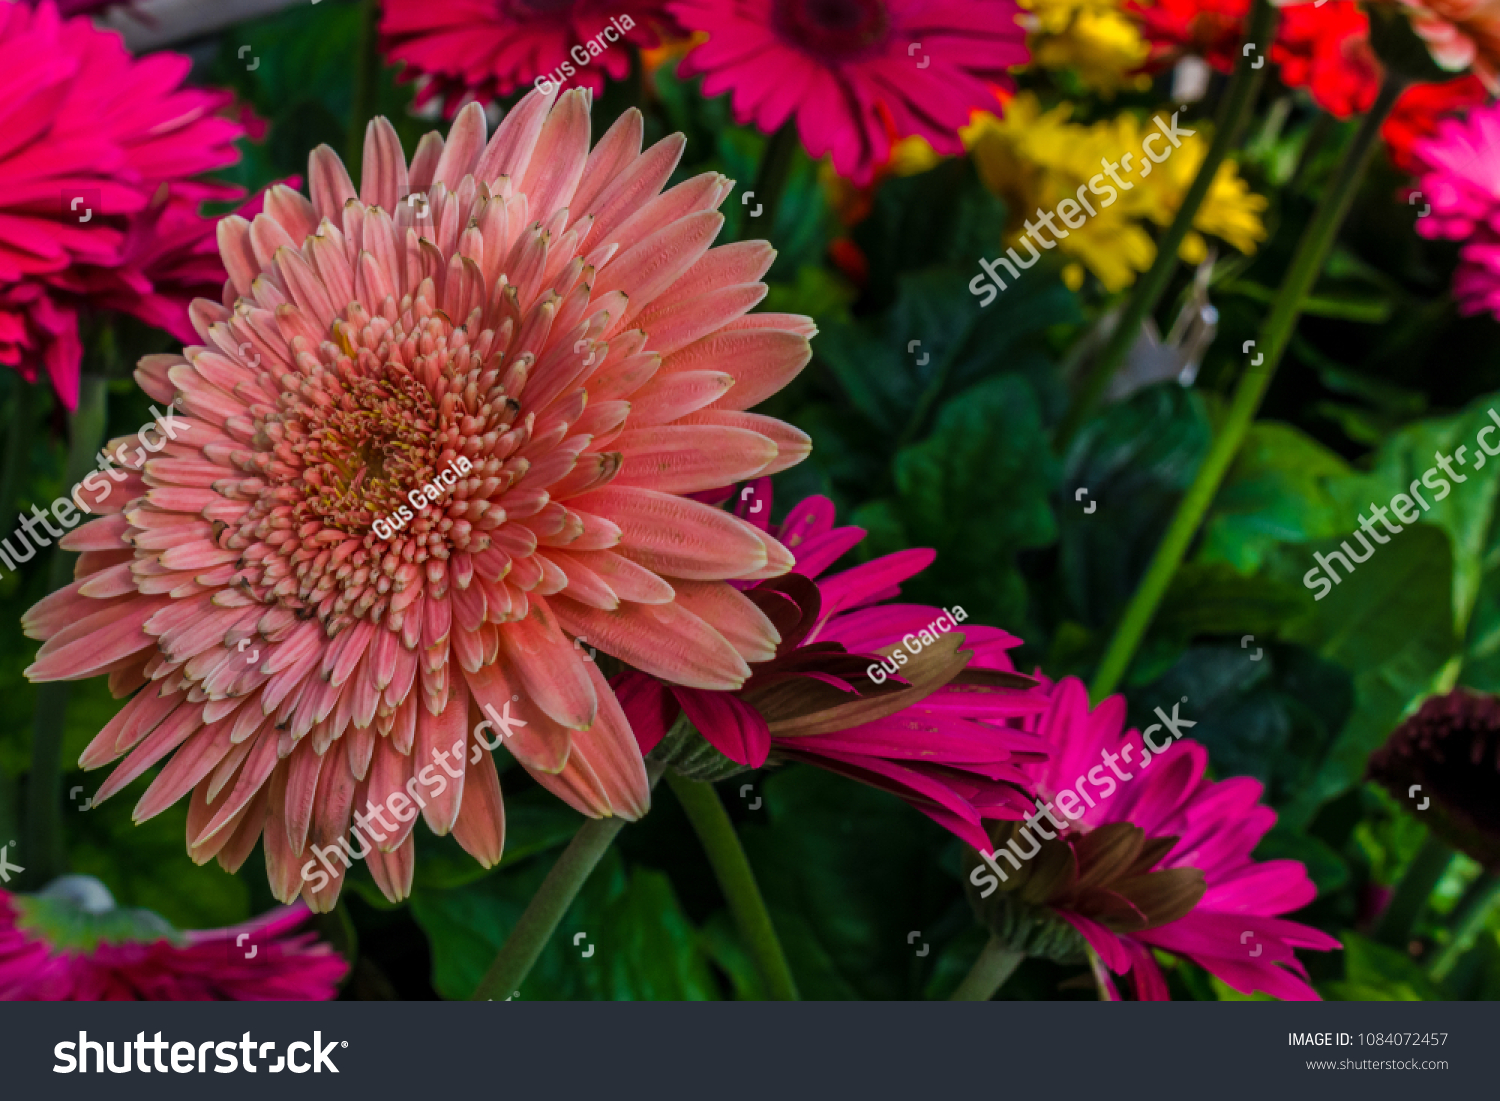 Colorful vibrant gerbera daisy featuring flower stock photo edit colorful vibrant gerbera daisy featuring flower parts such as petals pistil peduncle and pollen izmirmasajfo